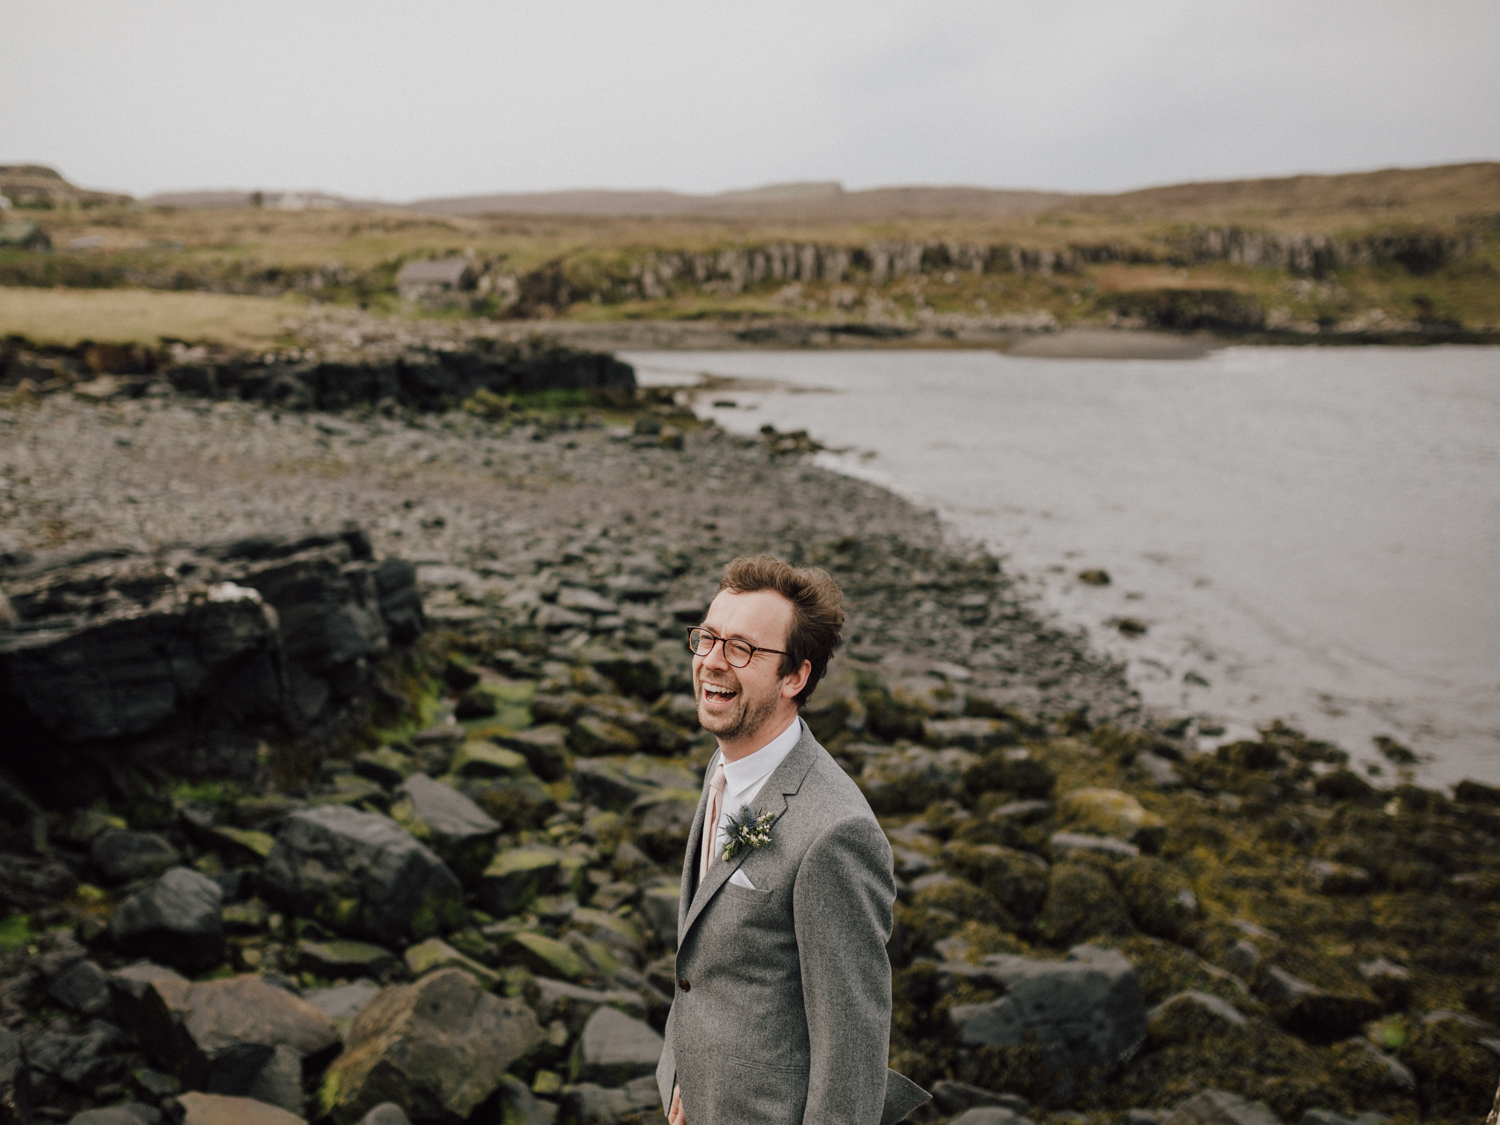 capyture-wedding-photographer-destination-nature-intimate-wedding-isle-of-skye-scotland-190